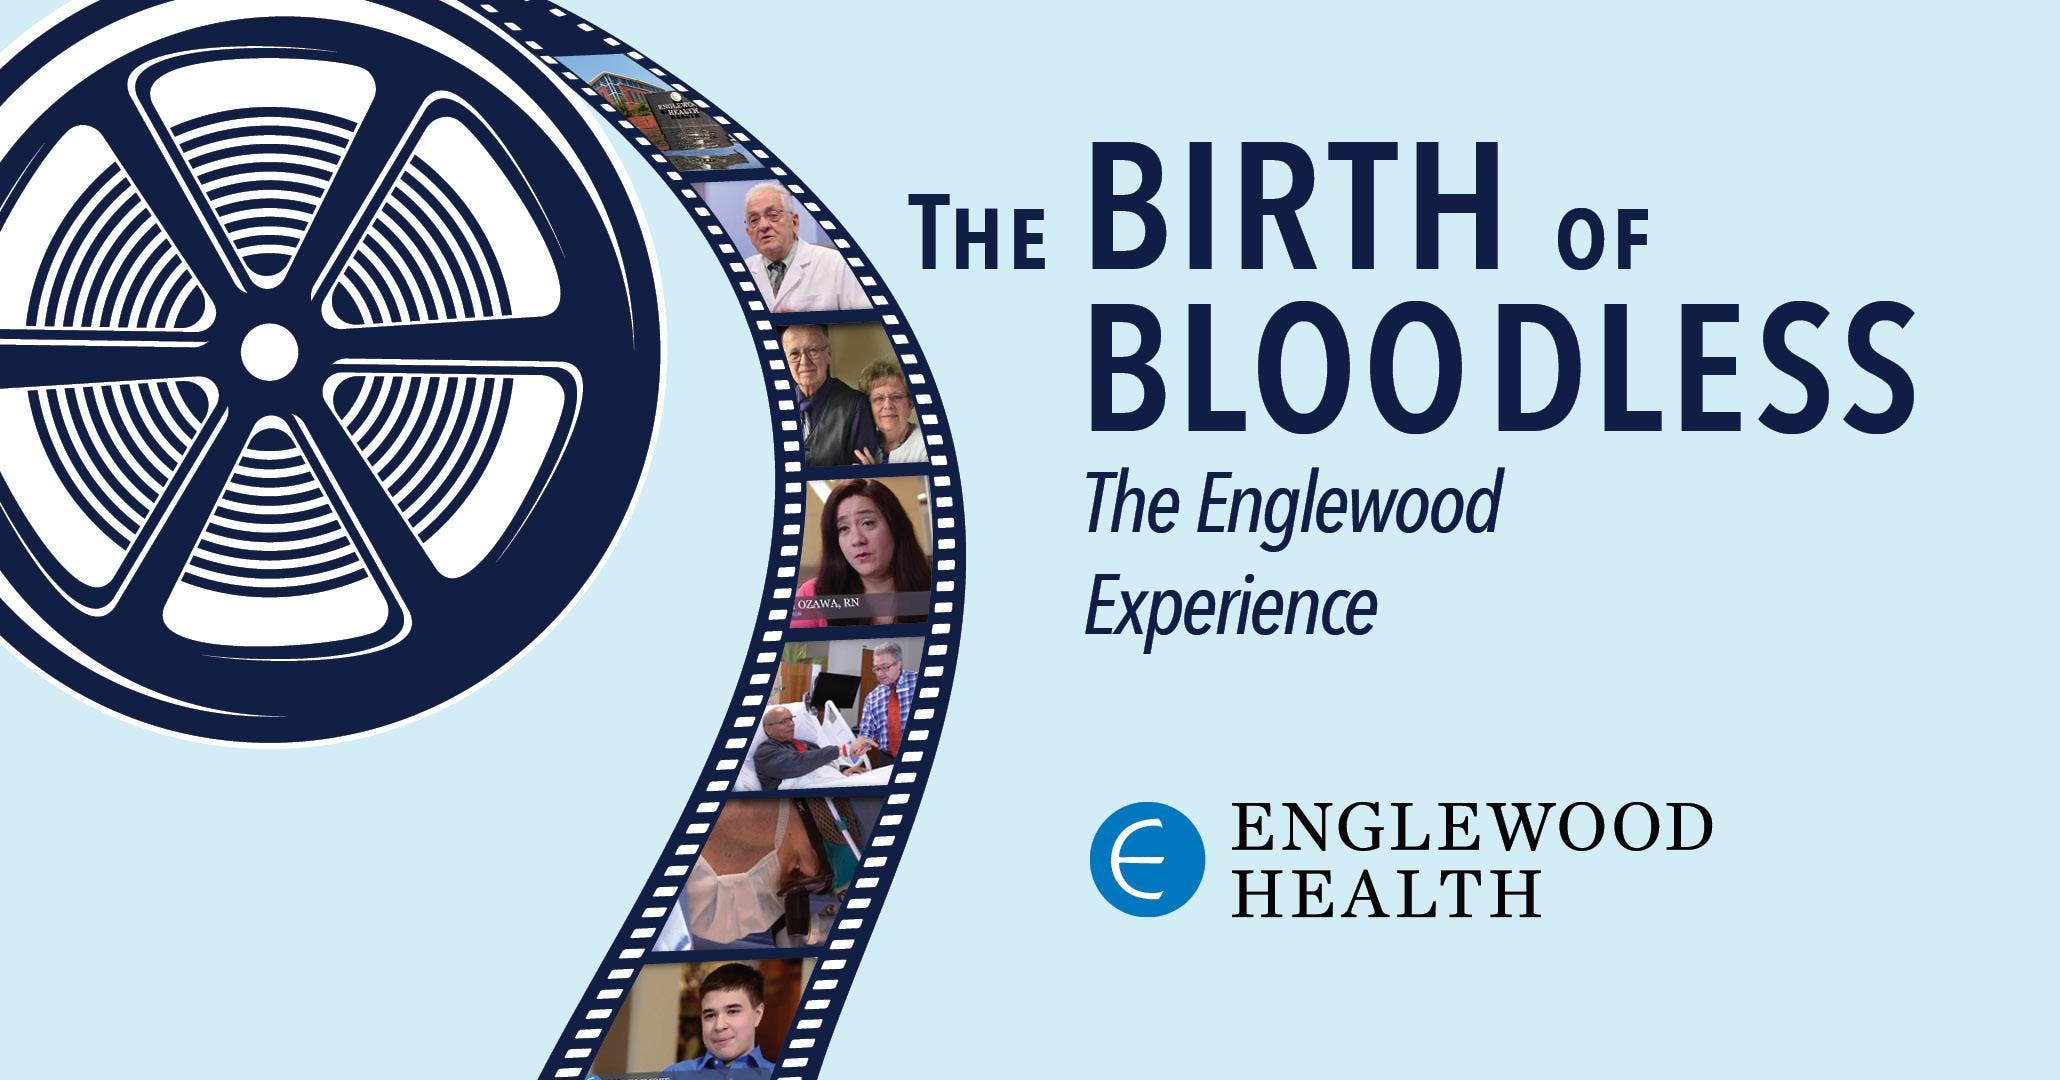 More info: The Birth of Bloodless: The Englewood Experience - Film Screening